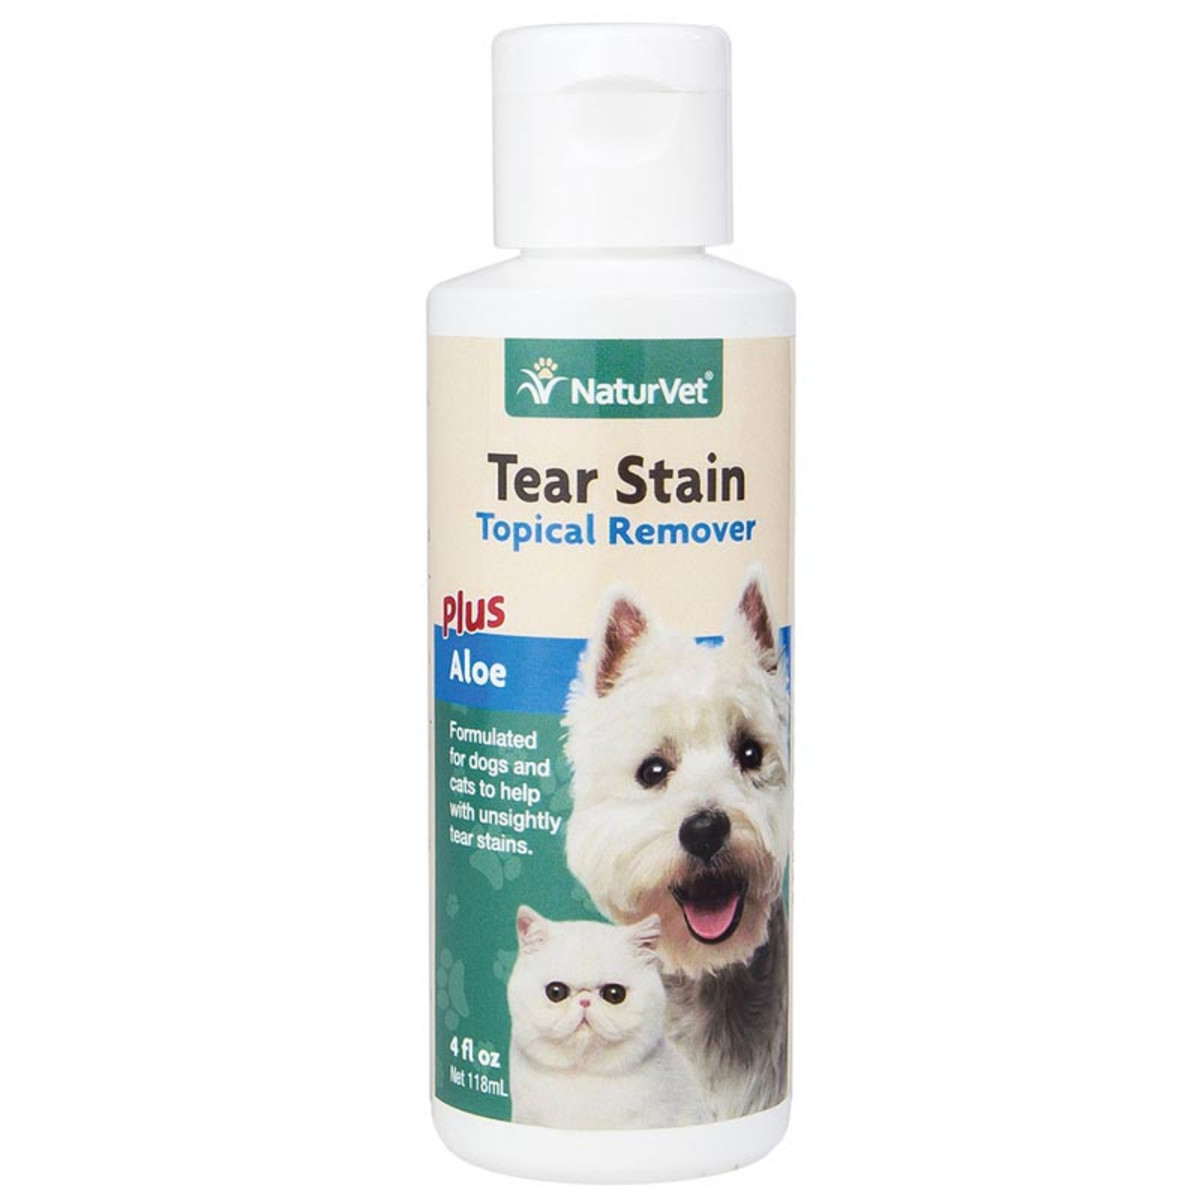 NaturVet Tear Stain Remover for Dogs - Topical Formula with Aloe 4 oz